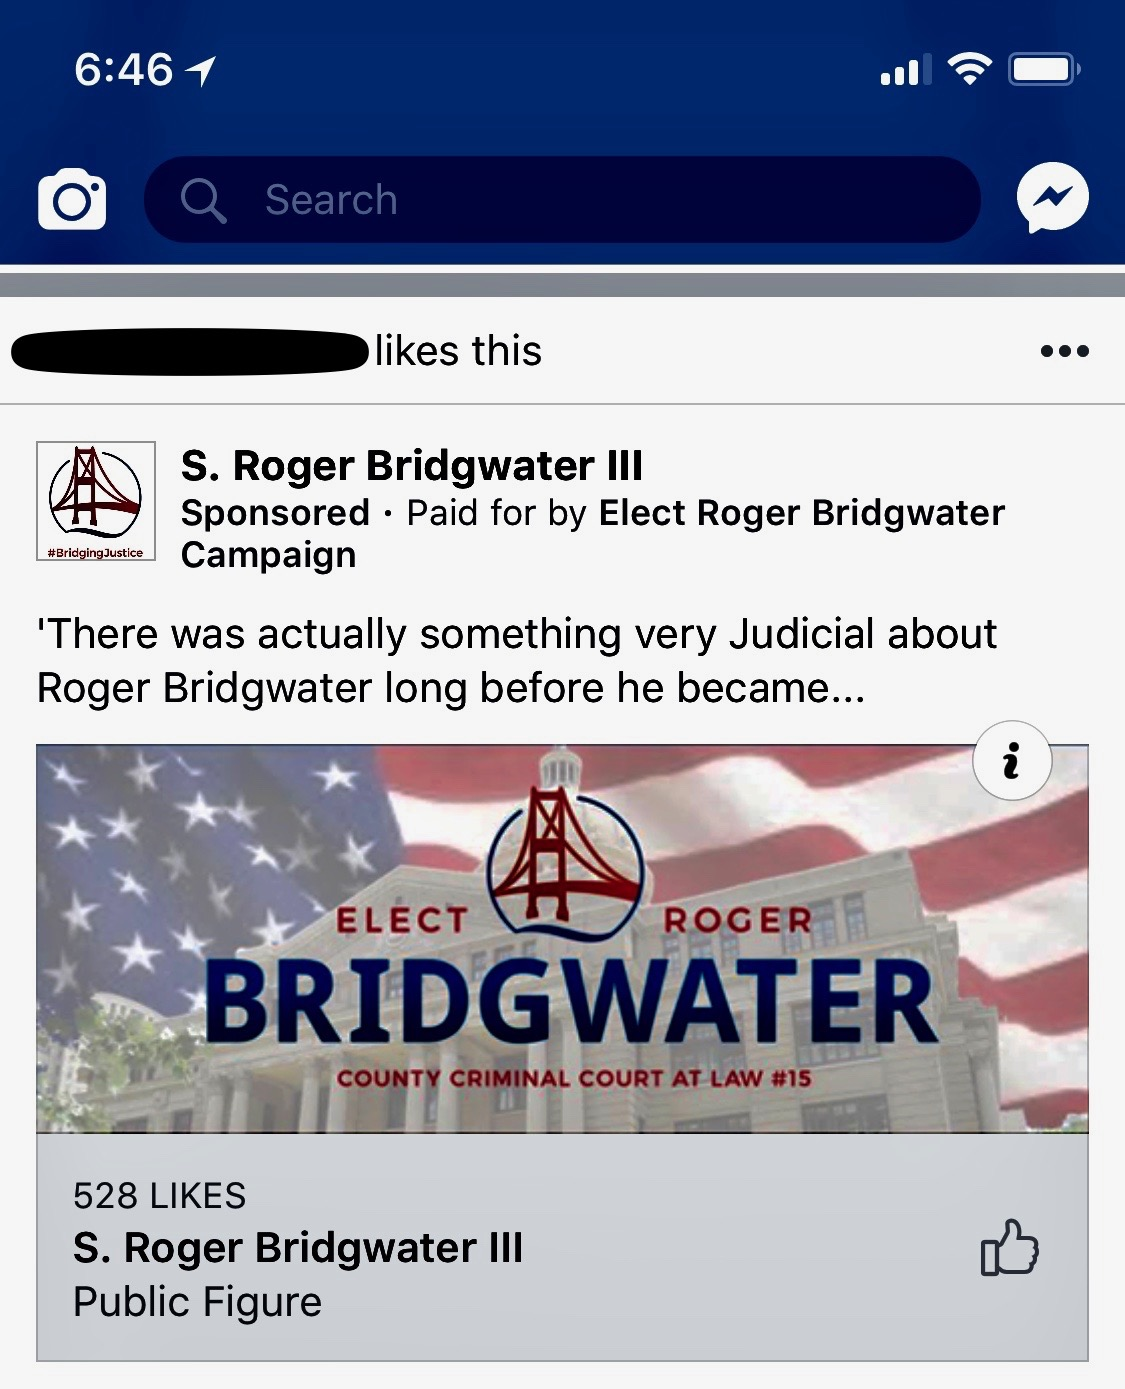 Life at the harris county criminal justice center 2018 it was an ad for roger bridgwaters candidacy for harris county court at law 15 solutioingenieria